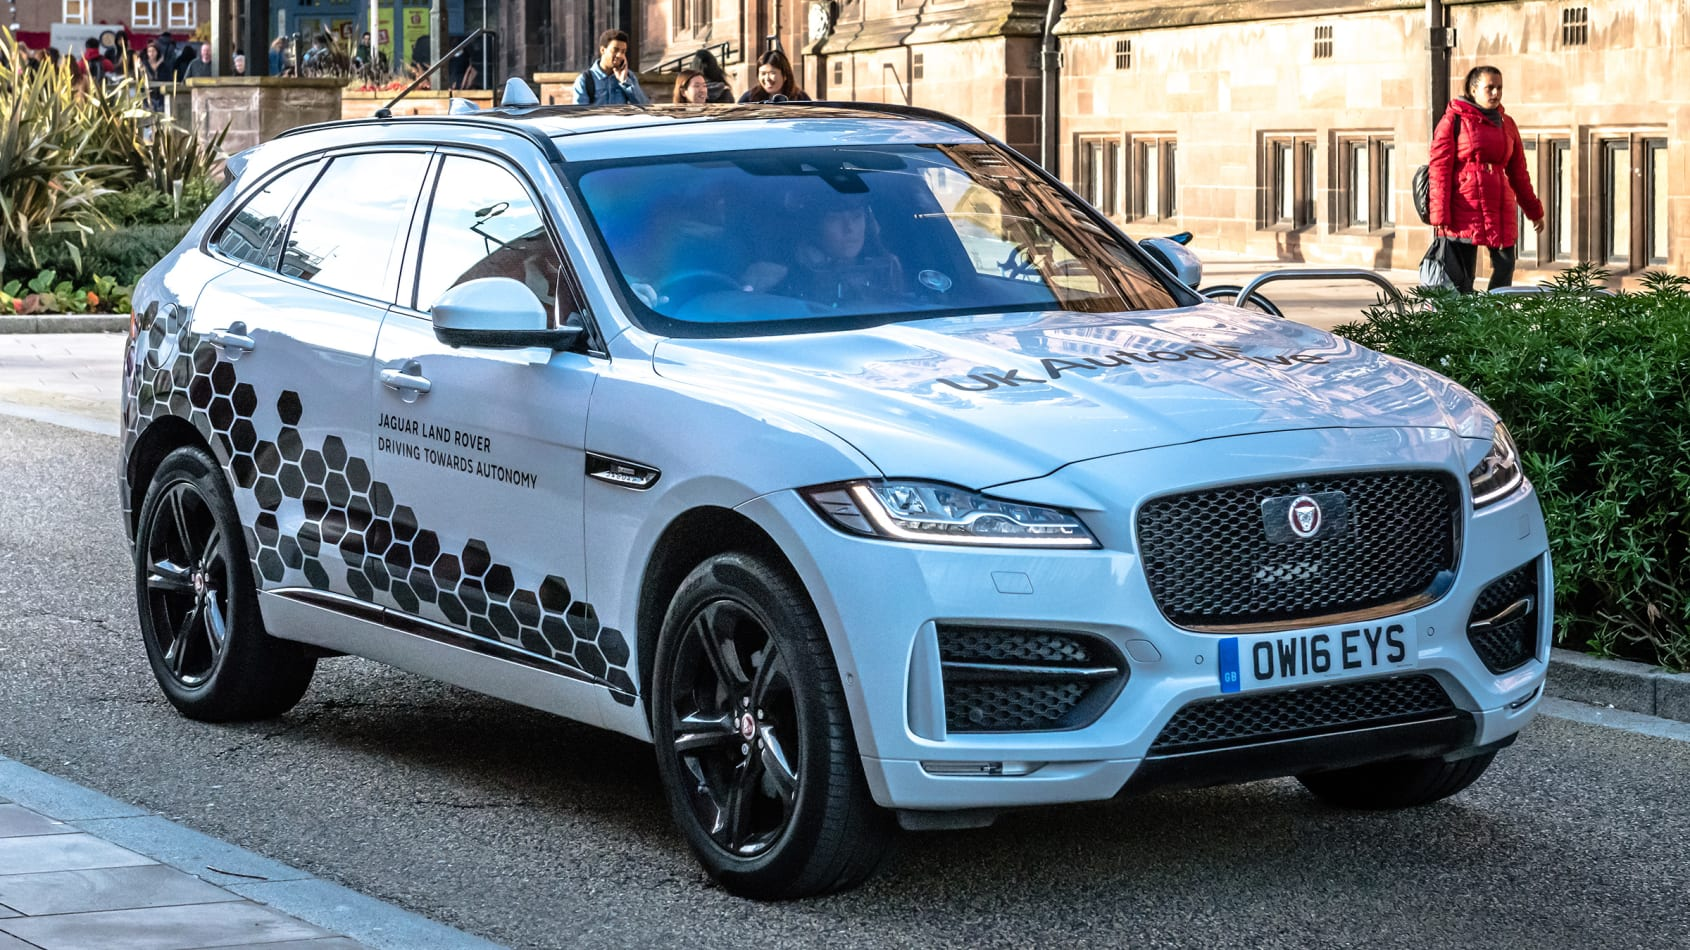 Driverless car users may not be liable in accidents